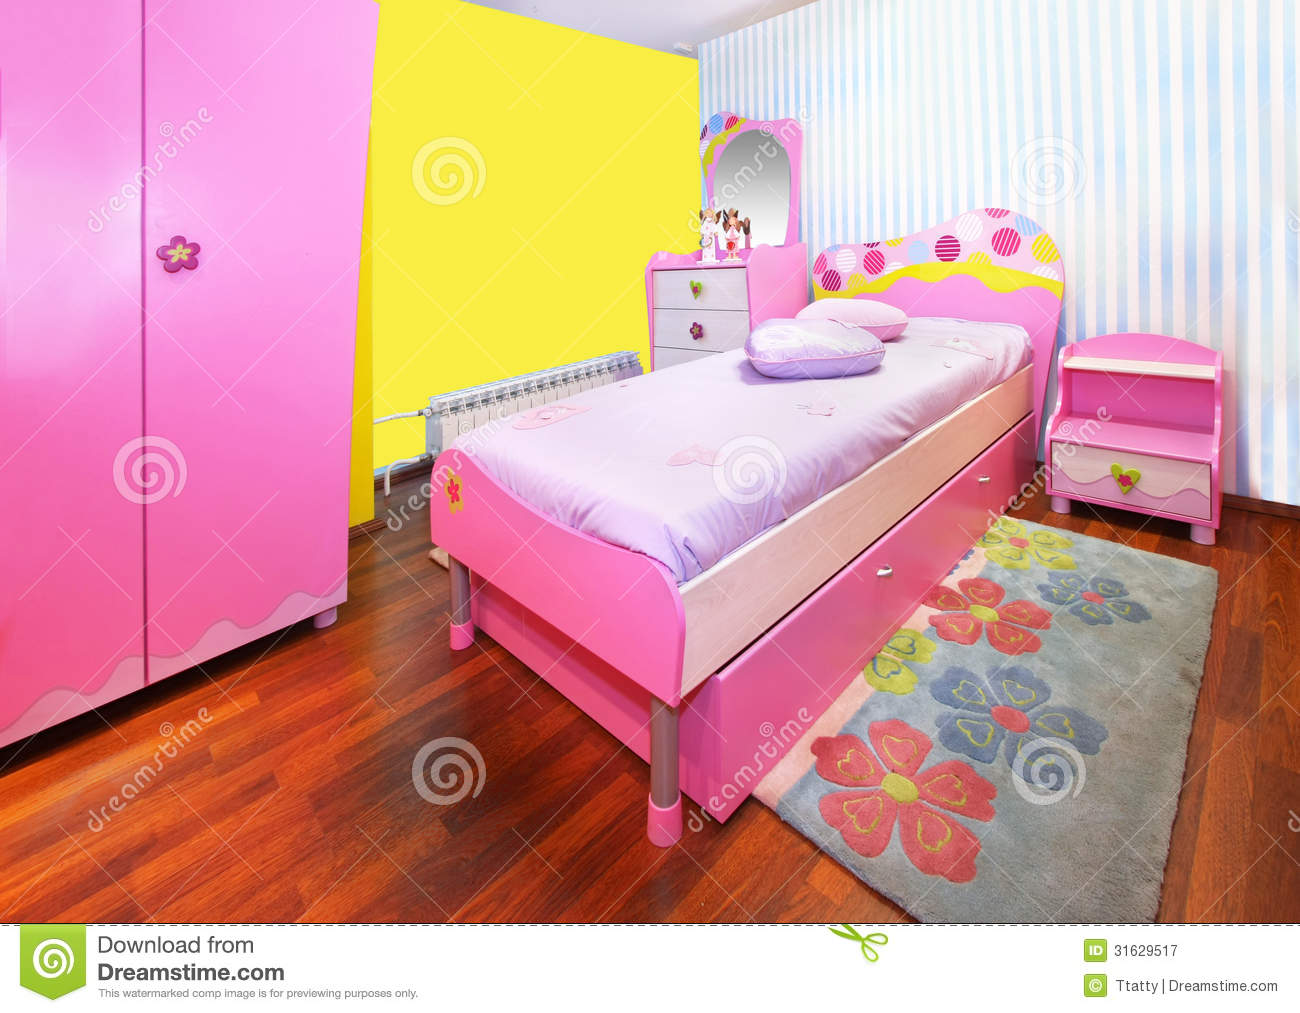 Chambre a coucher moderne jeune fille for Chambre a coucher moderne pour jeune fille